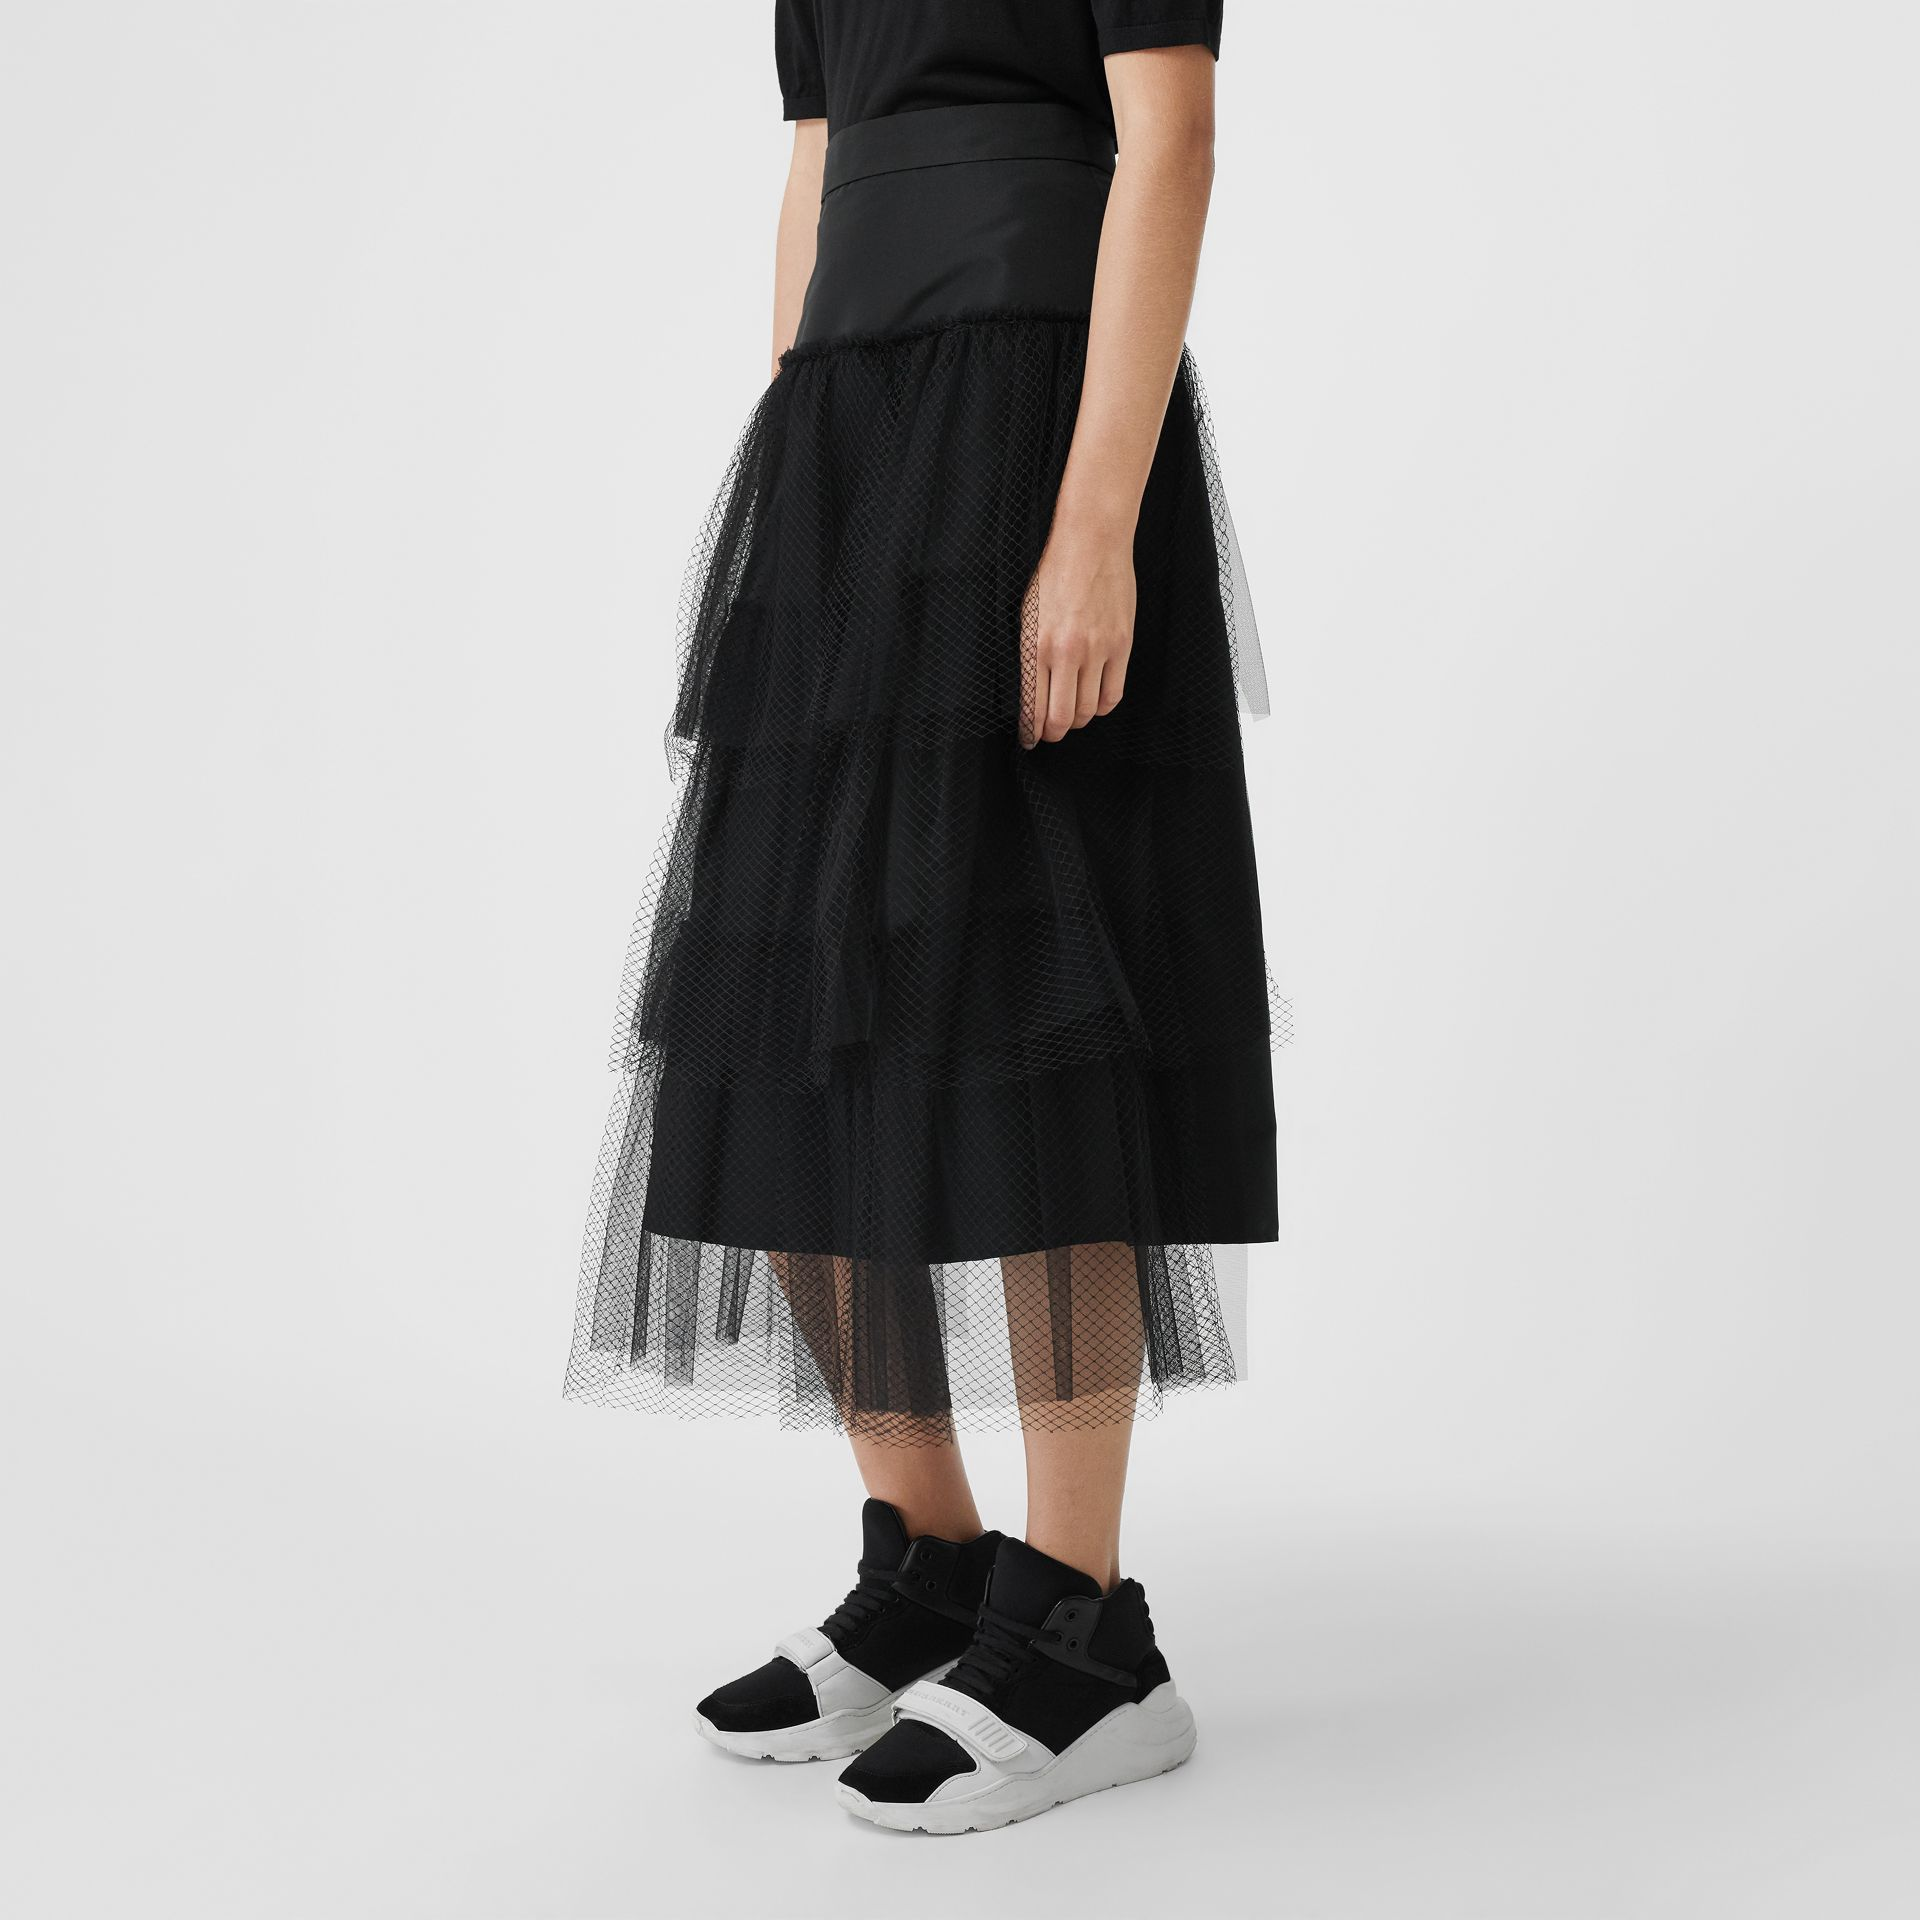 Tiered Tulle A-line Skirt in Black - Women | Burberry Canada - gallery image 4